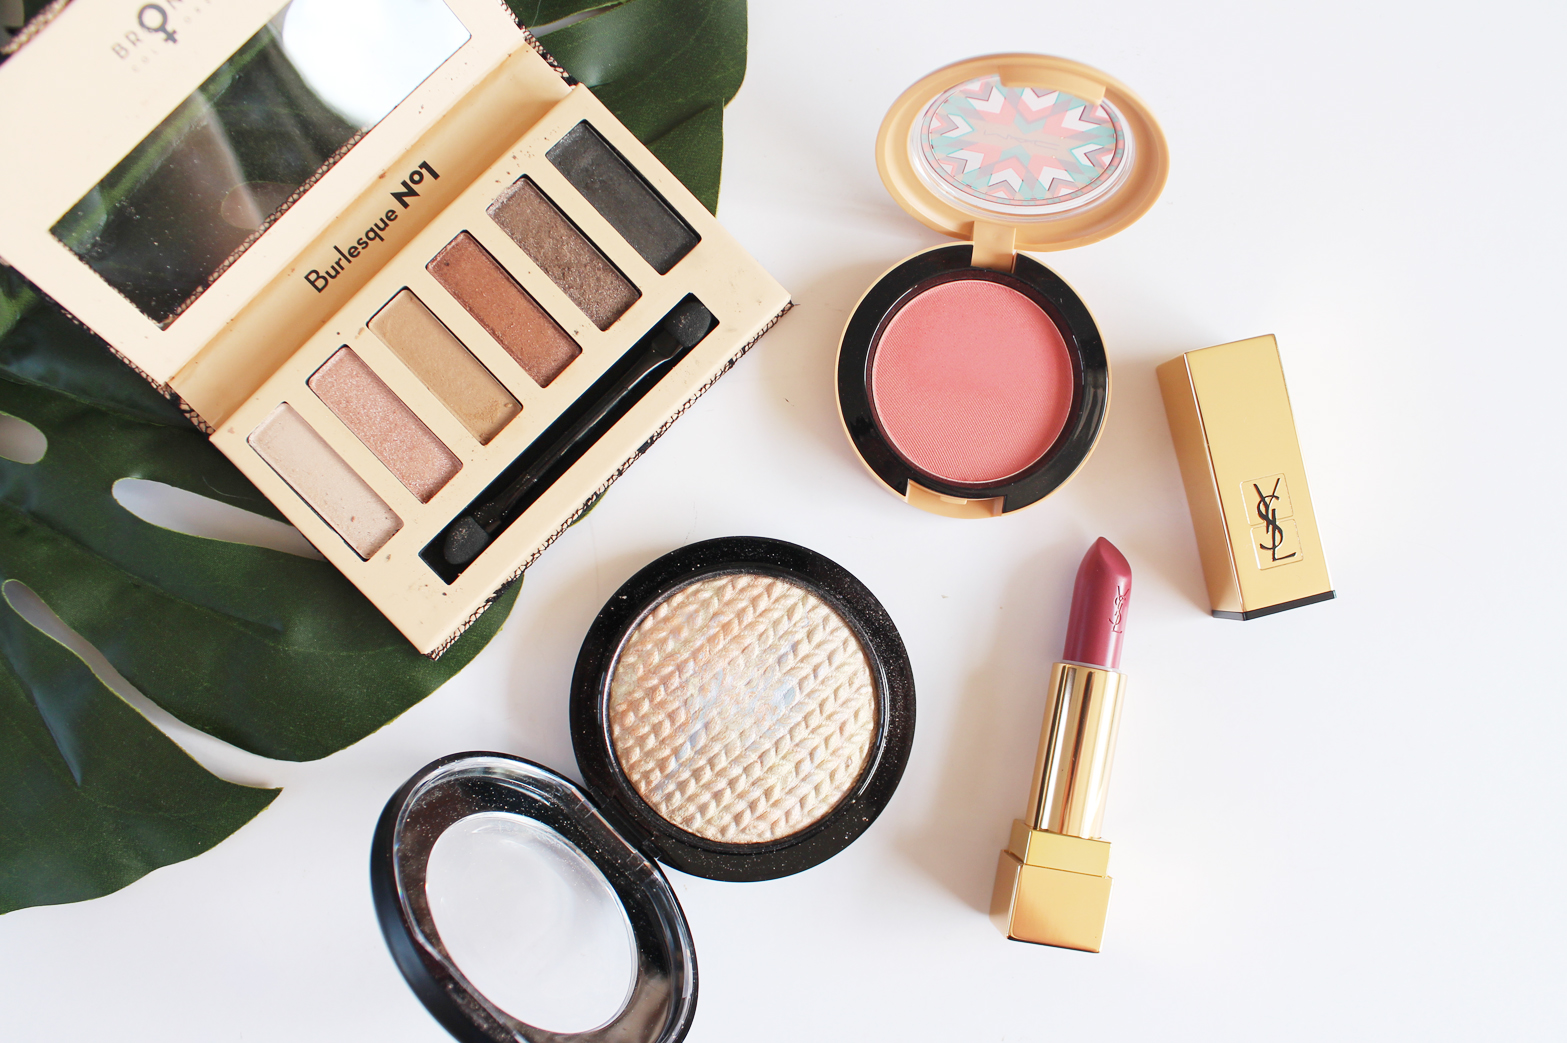 MOST LOVED | July '16 - M.A.C., YSL + Bronx Colors - CassandraMyee